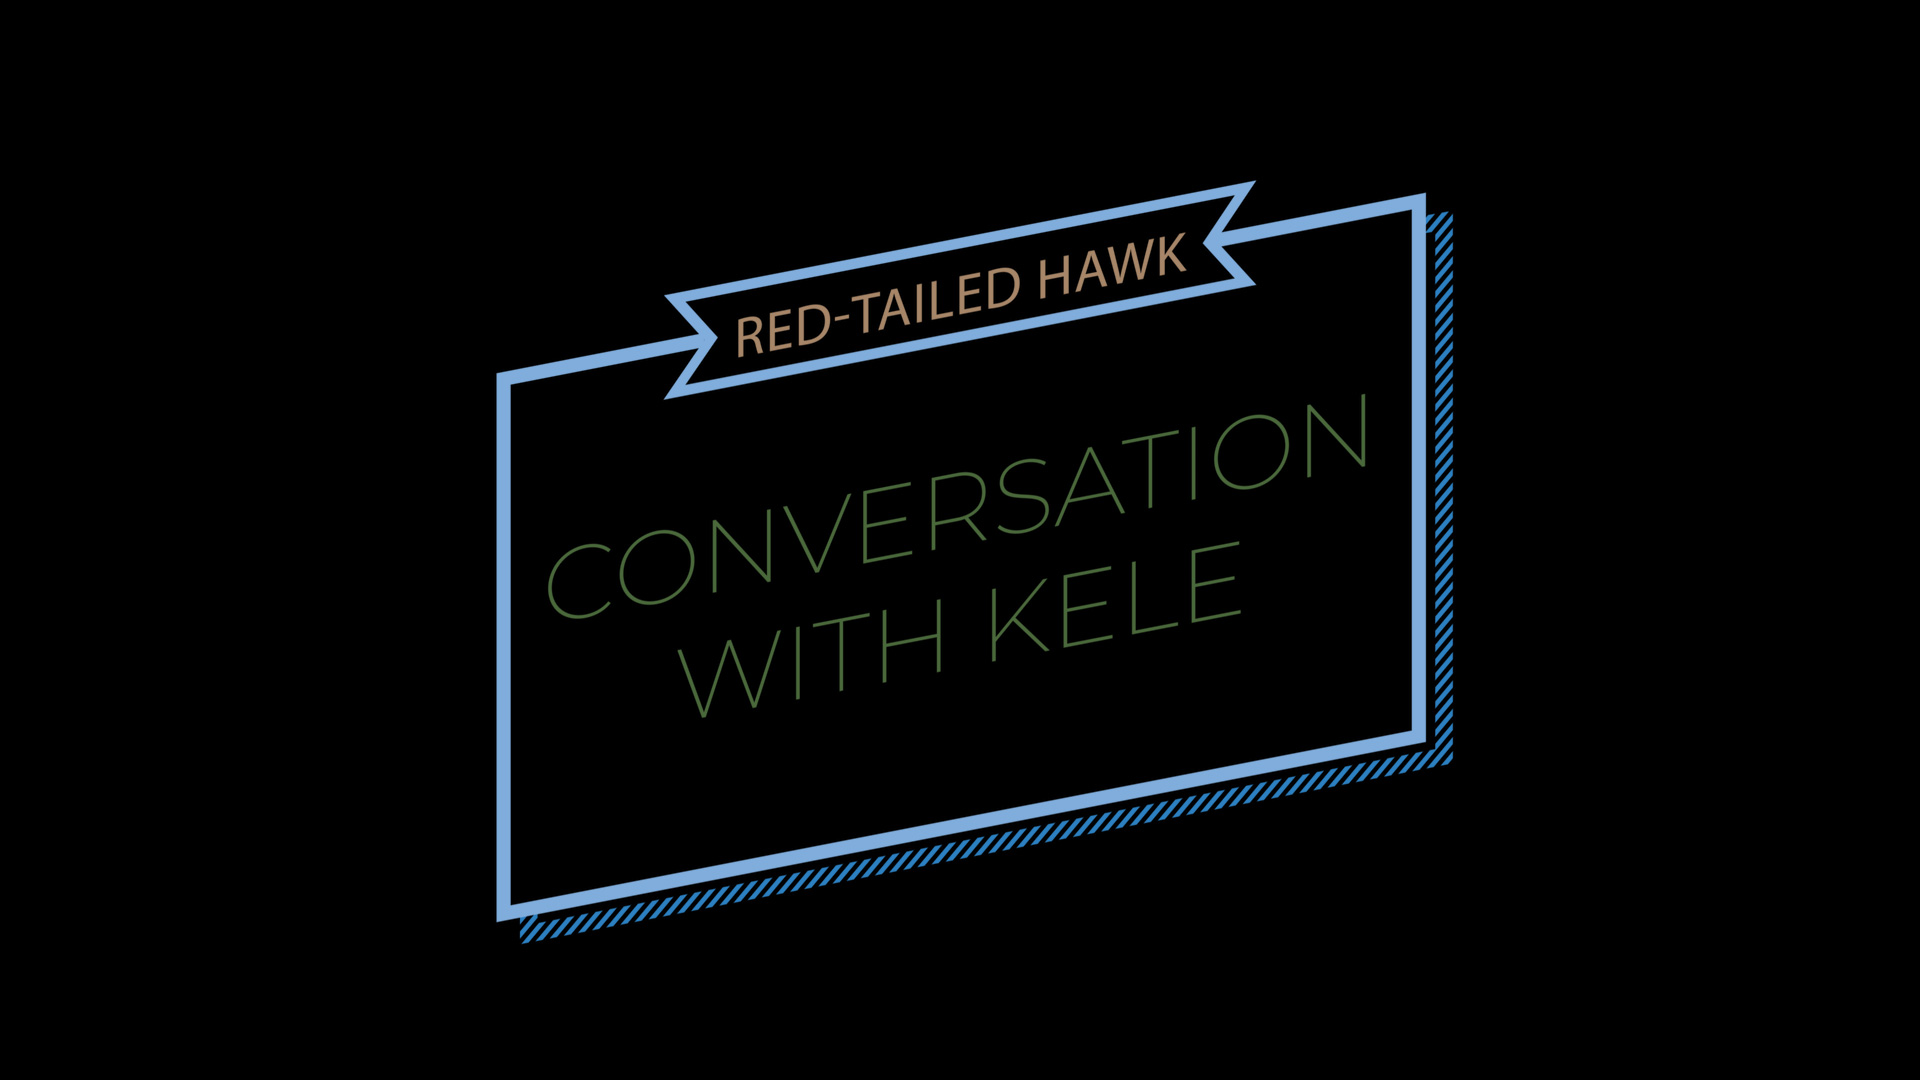 Conversation with Kele - Red-tailed Hawk-Thumbail-1080